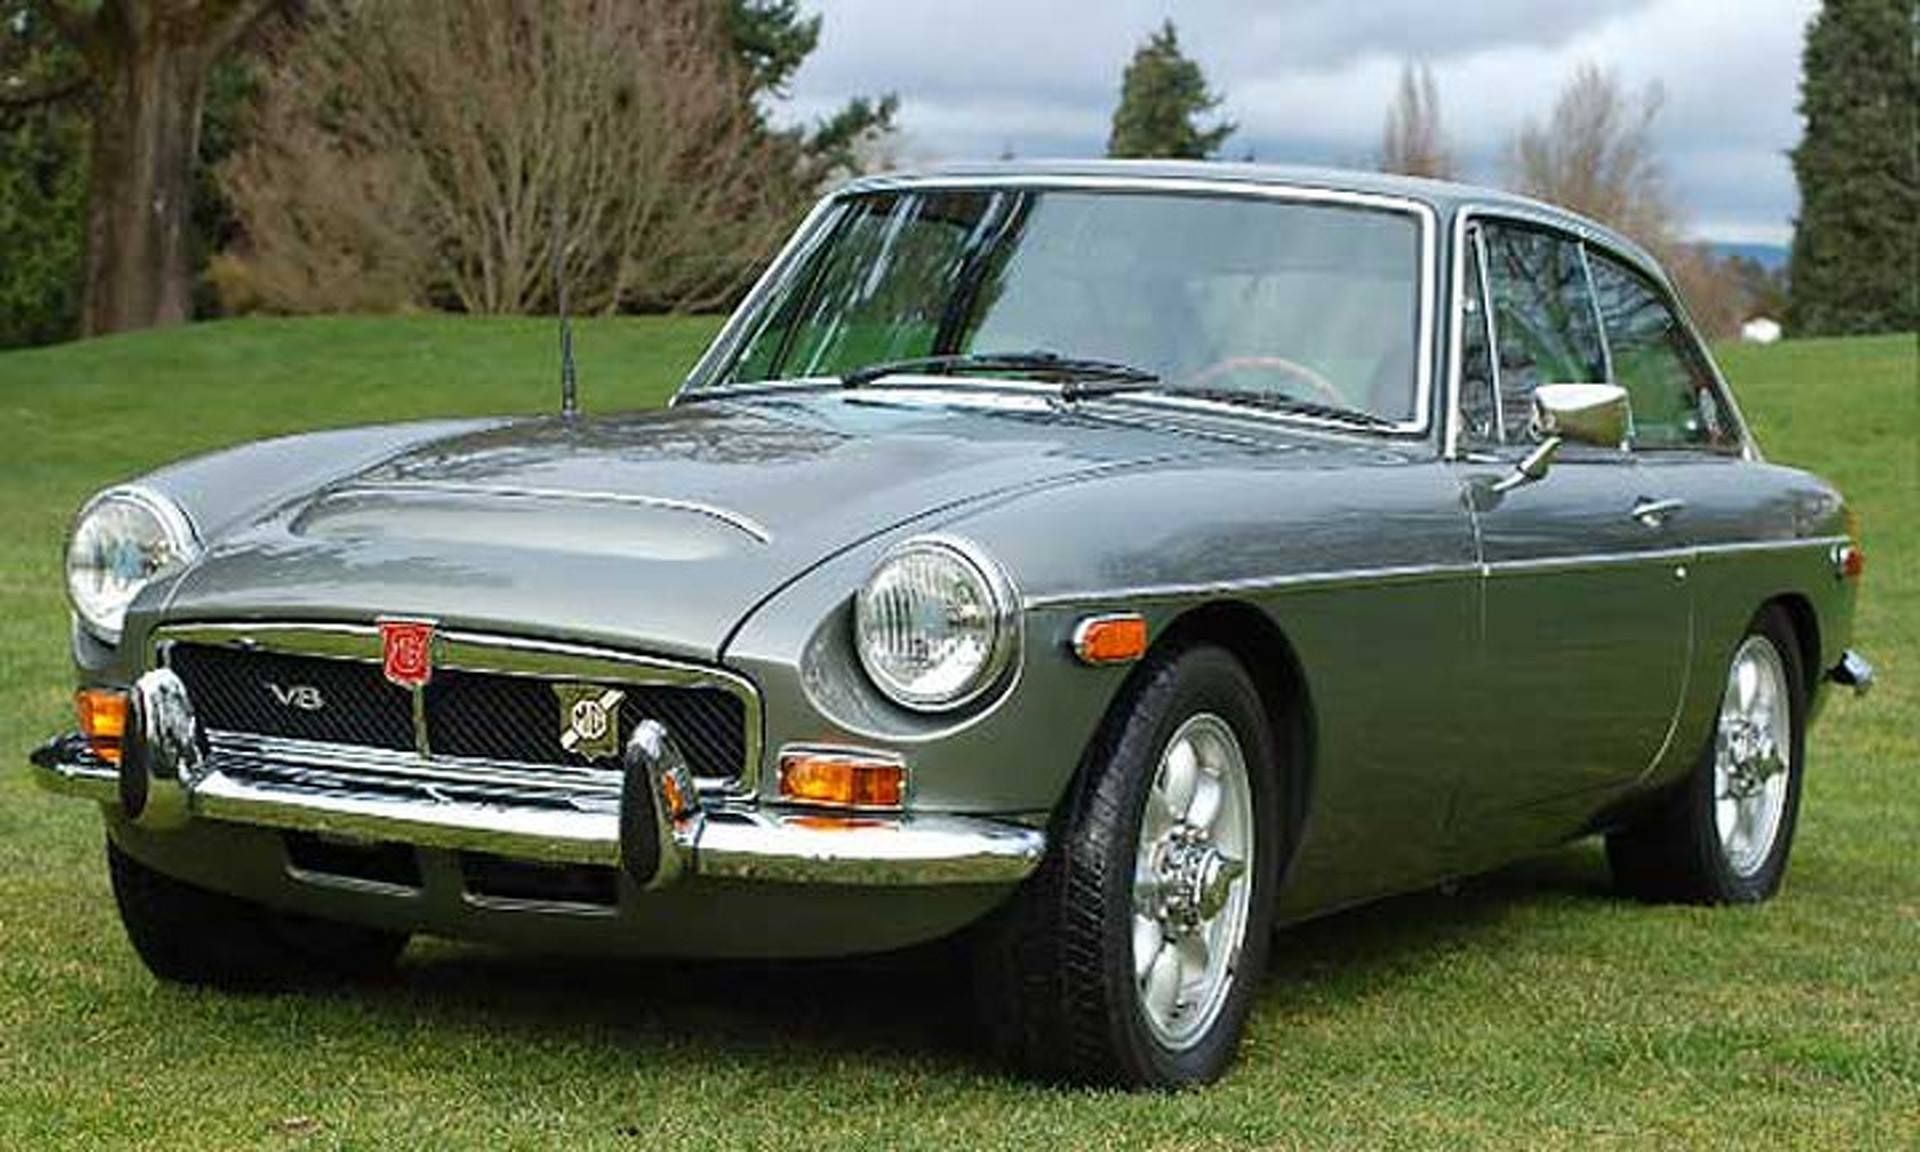 MG MGB GT V8 with MGC bonnet | British car MGB GT | Classic